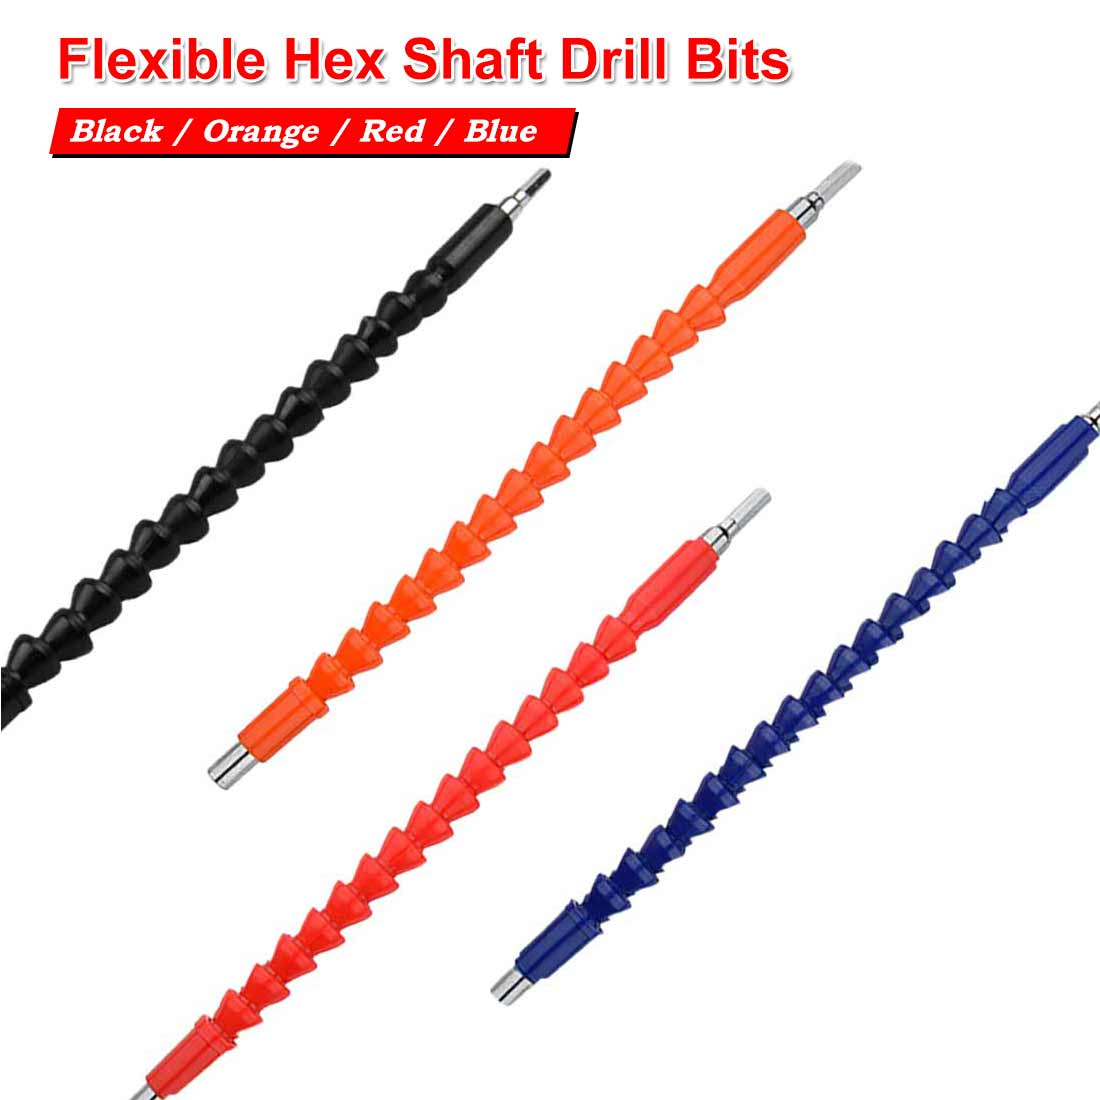 1//4 Flexible Extension Screwdriver Drill Bit Shaft Holder Connecting Link for Electronic Drill Screwdriver